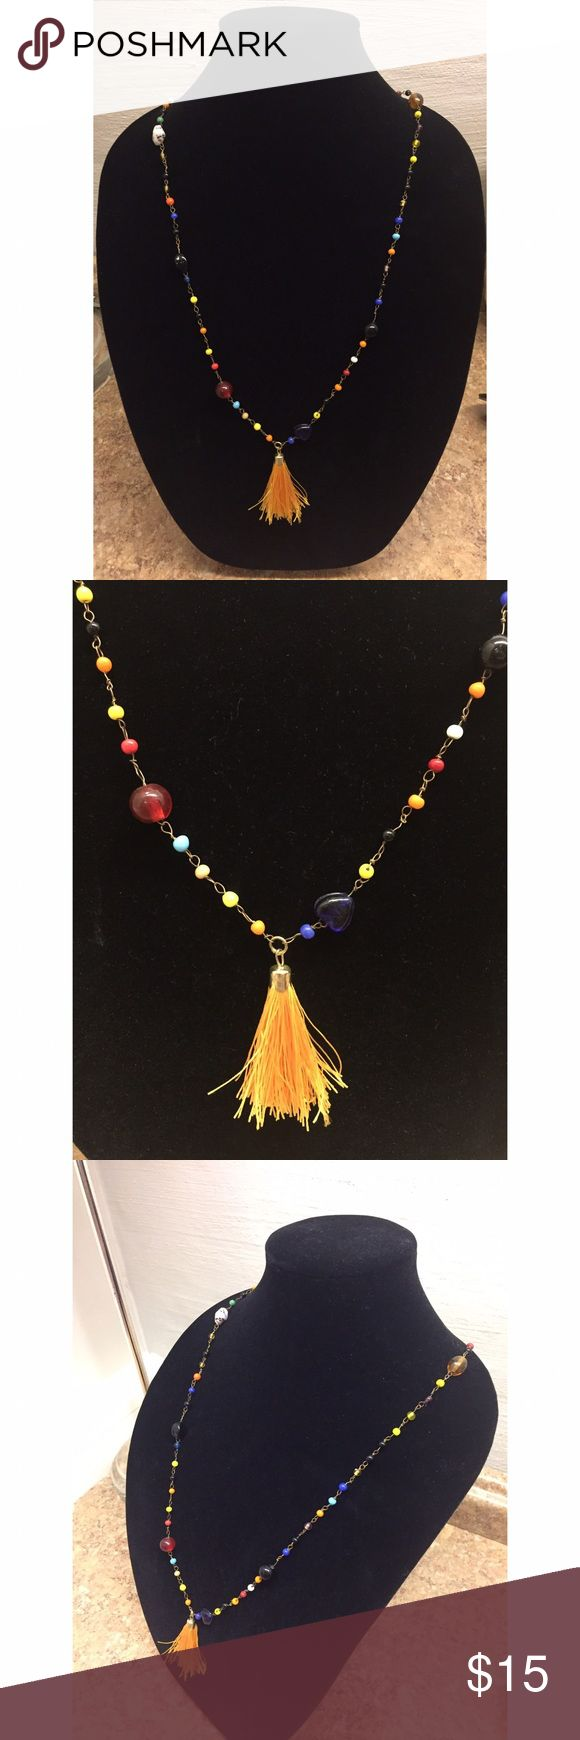 "Multi-colored beaded chain necklace with tassel Multi-colored beaded chain necklace with tassel. Total chain length is 38"", and necklace hangs 19"" from neck. Love these bright fun colors for the warmer months! Never been worn and in great condition! Jewelry Necklaces"